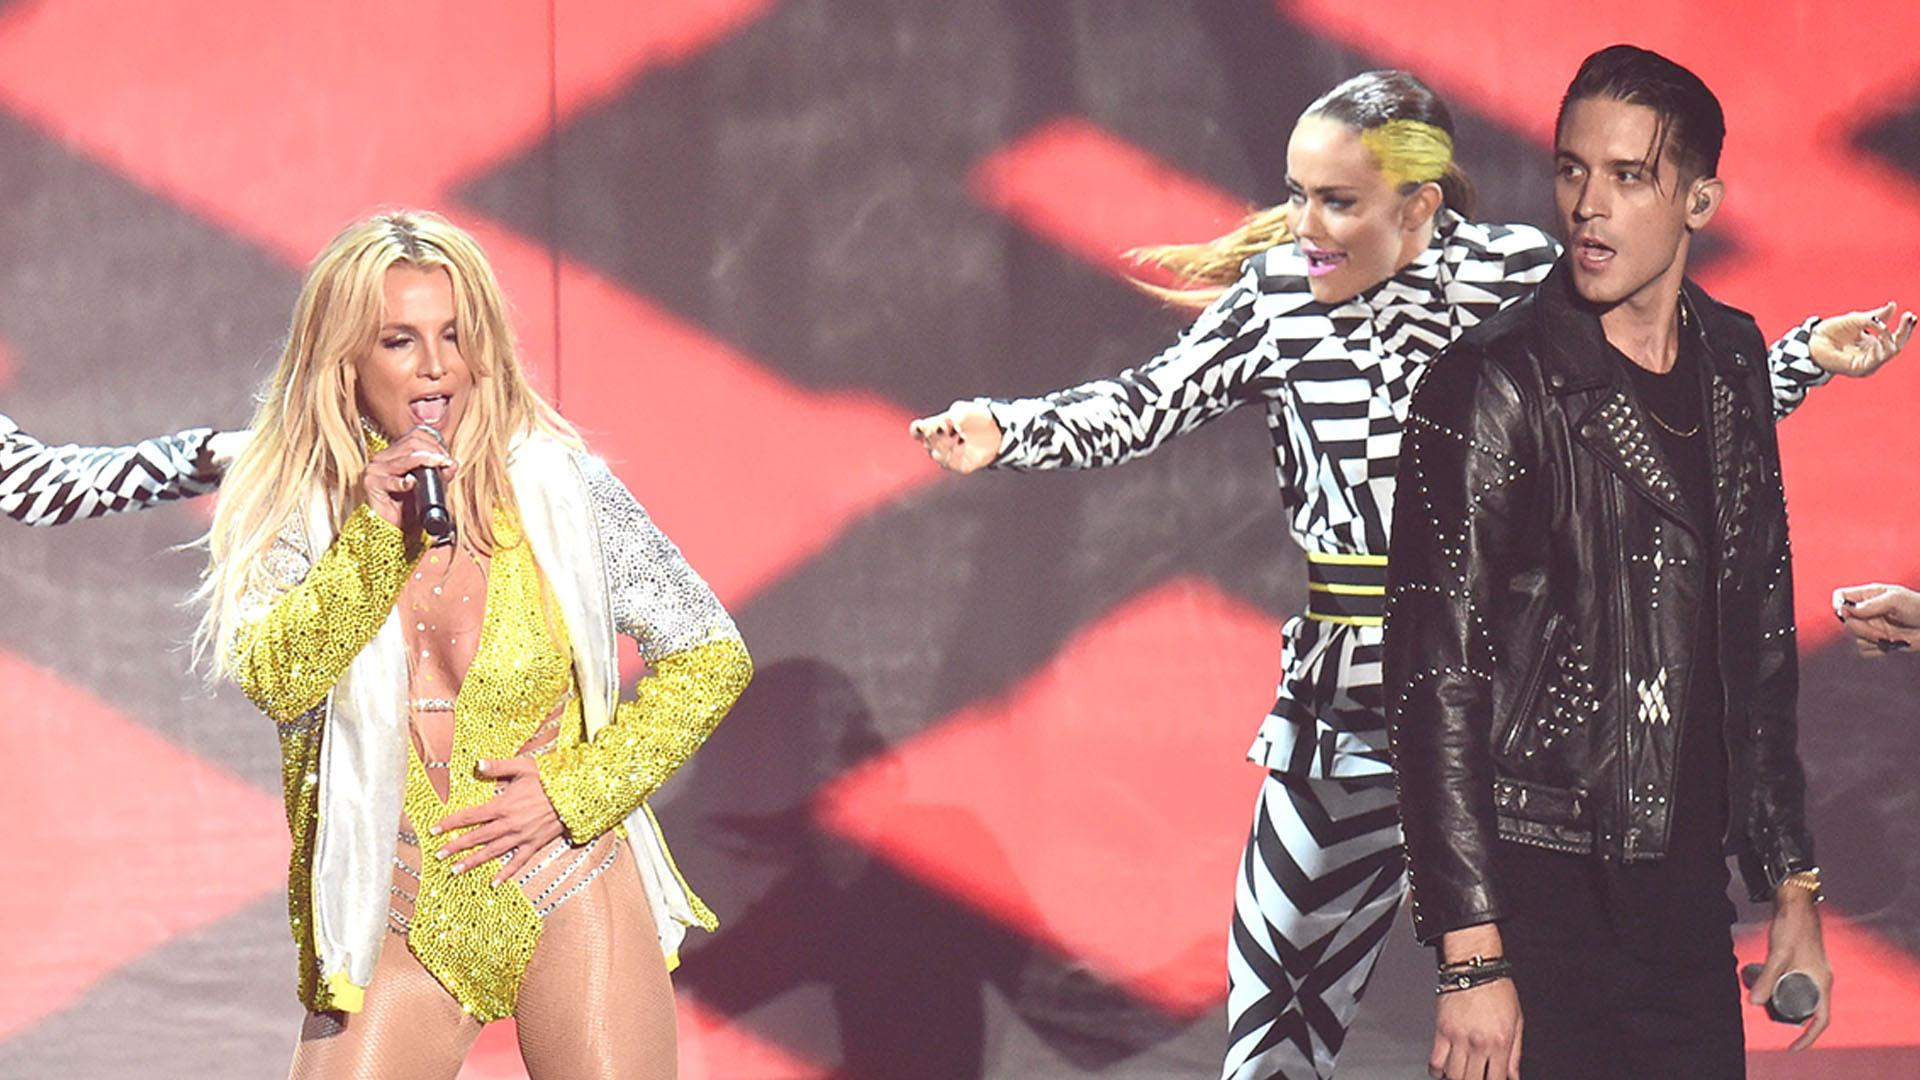 Britney Spears Makes Hot Return to MTV VMAs with 'Make Me' Performance